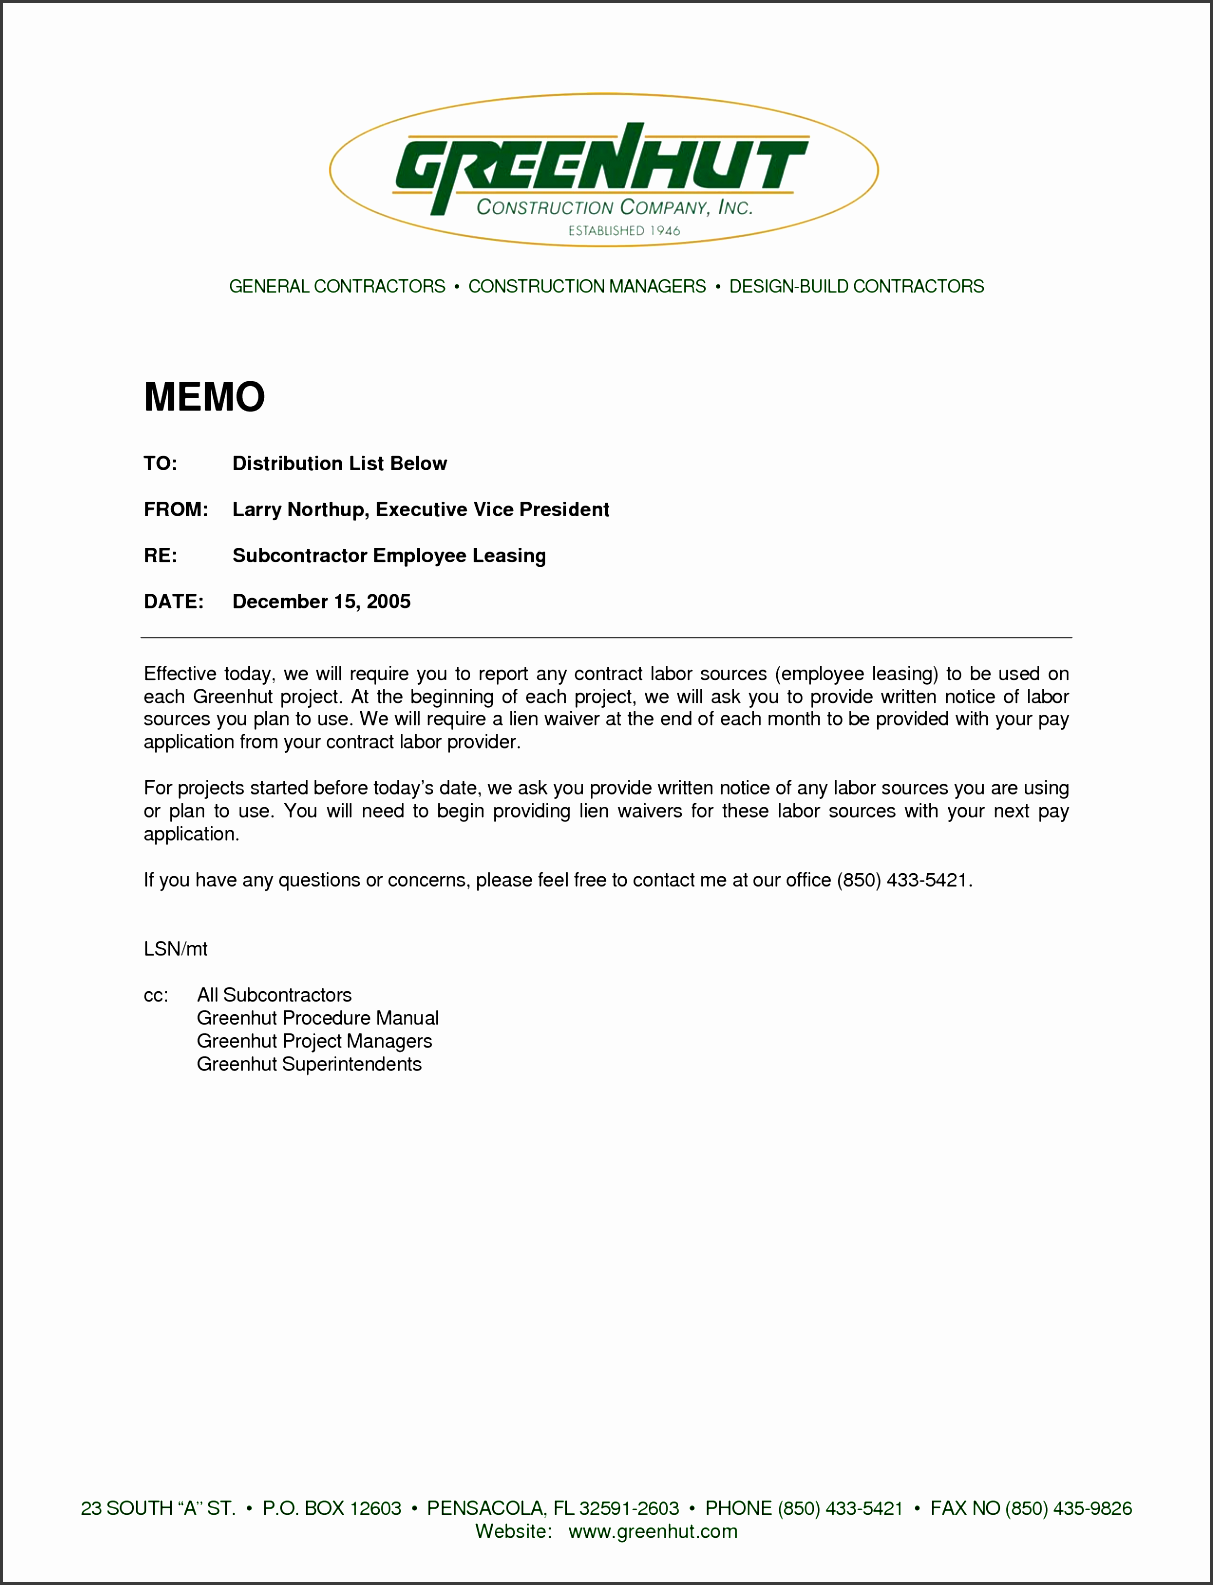 standard memorandum template for free the standard credit memo format template is available here and the individual in need of the format can